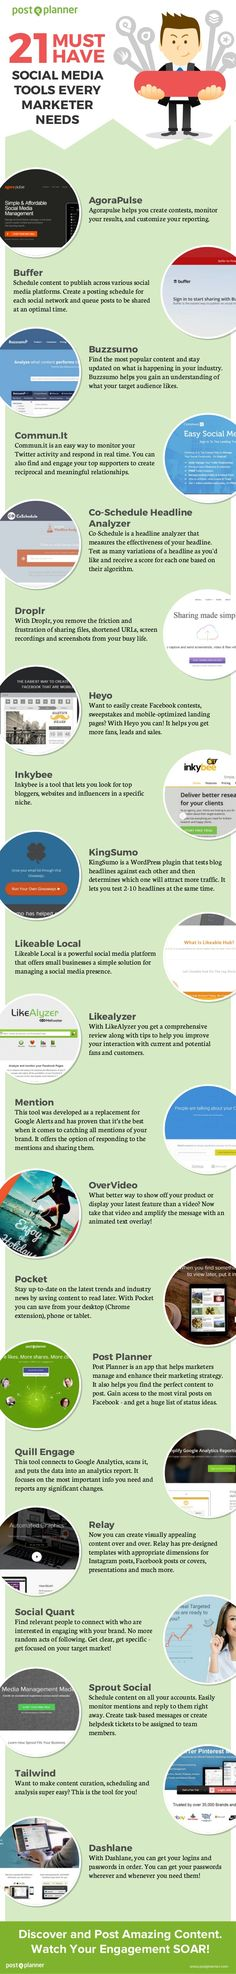 https://social-media-strategy-template.blogspot.com/ MUST HAVE21SOCIAL MEDIA TOOLS EVERY MARKETER NEEDS AgoraPulse Agorapulse helps you create contests, monitor your results, ...